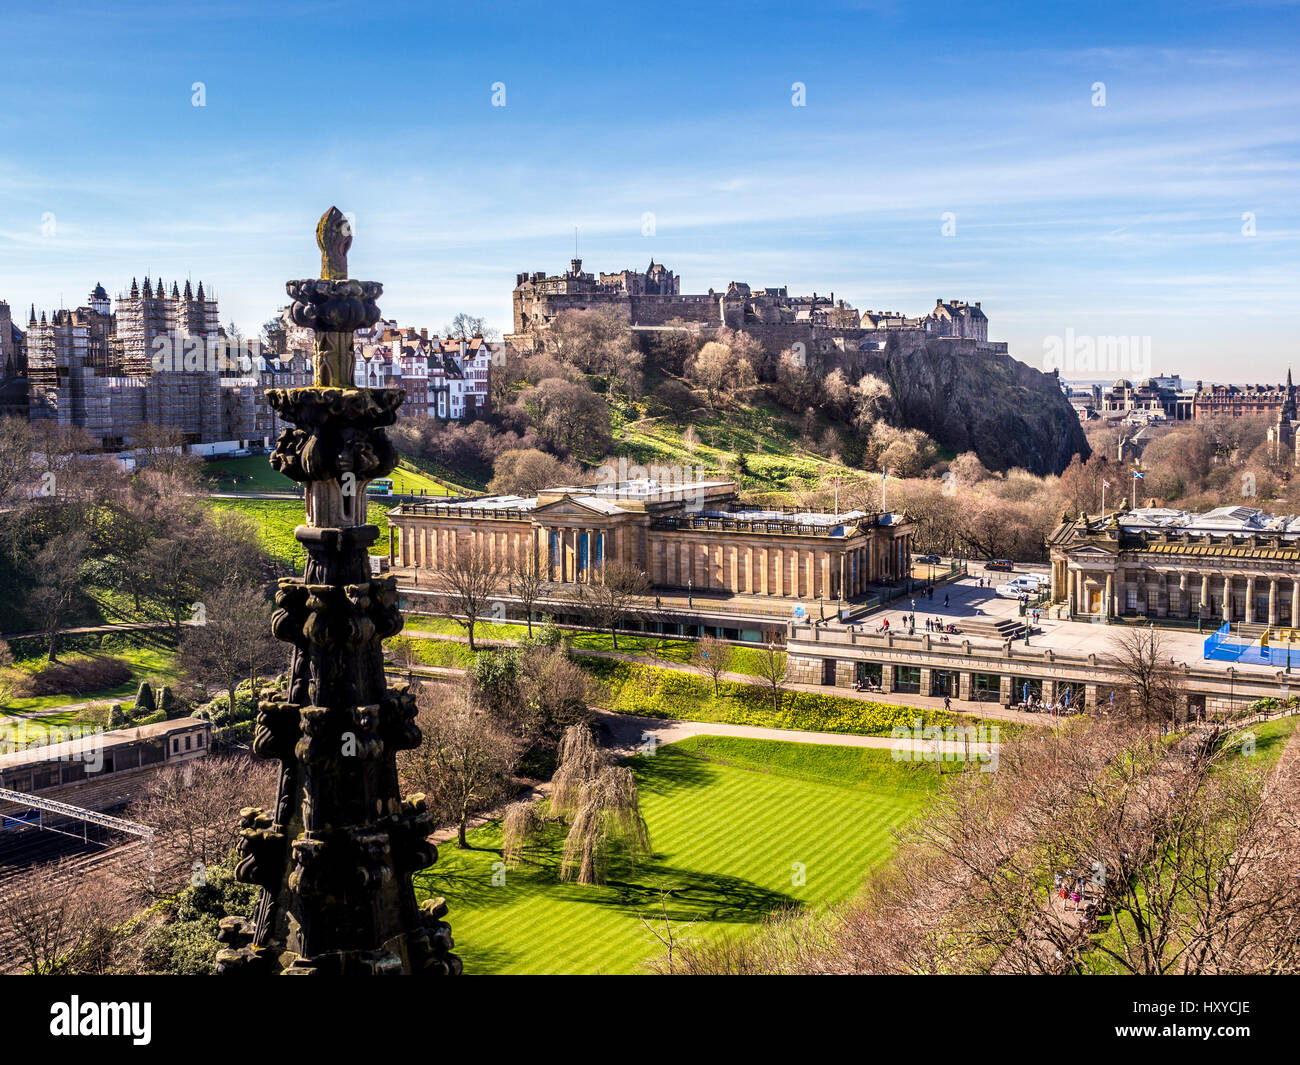 Edinburgh Castle. Scottish National Gallery, viewd from the Scott Monument, Edinburgh, Scotland, UK. - Stock Image